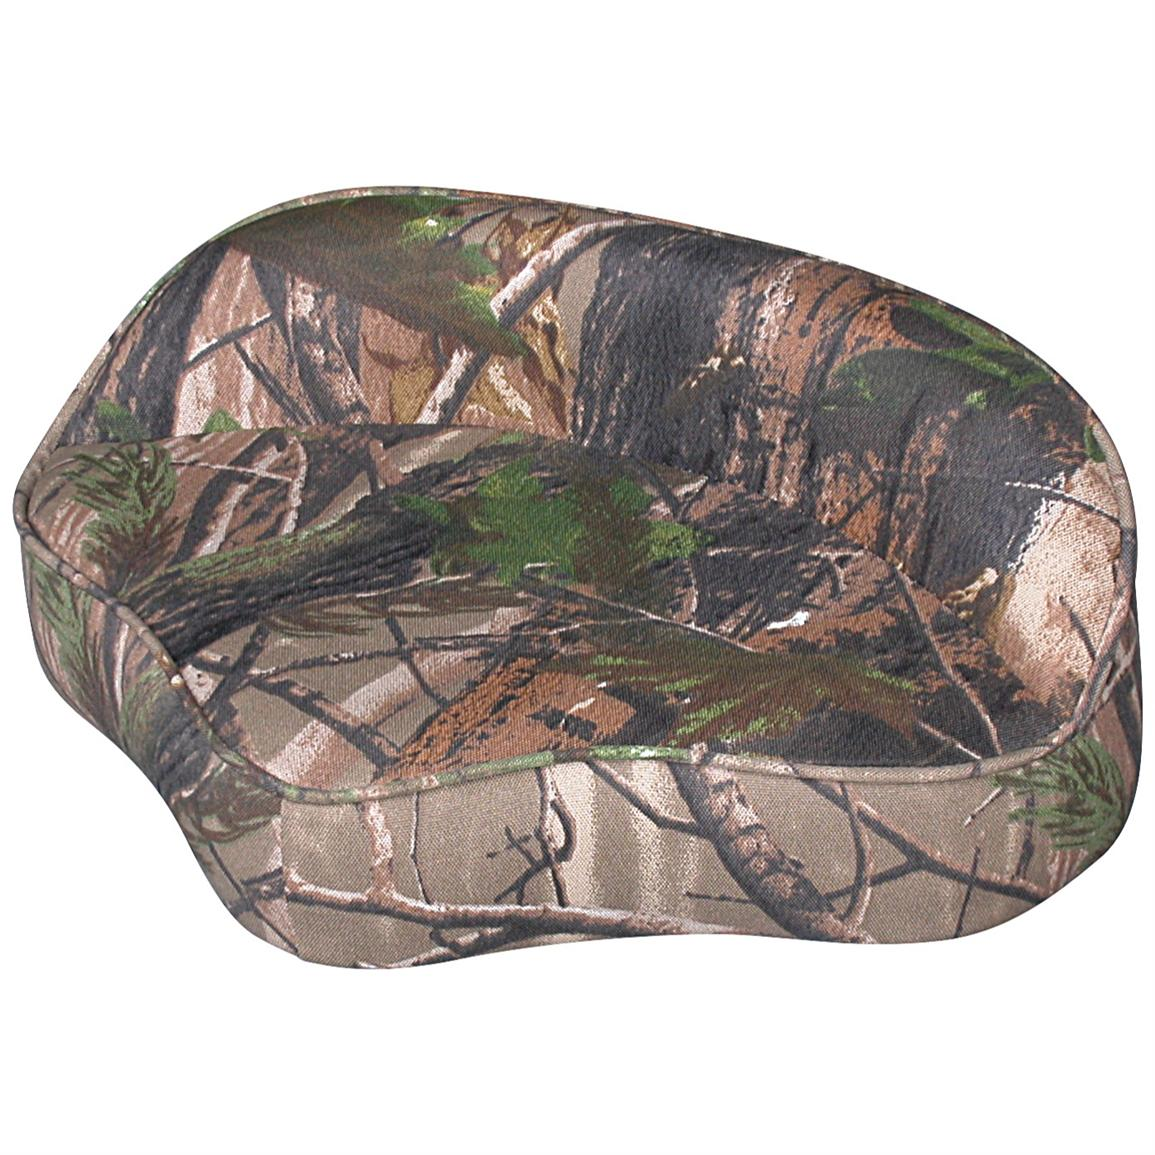 Wise® Casting Camo Boat Seat, Advantage All Purpose Green